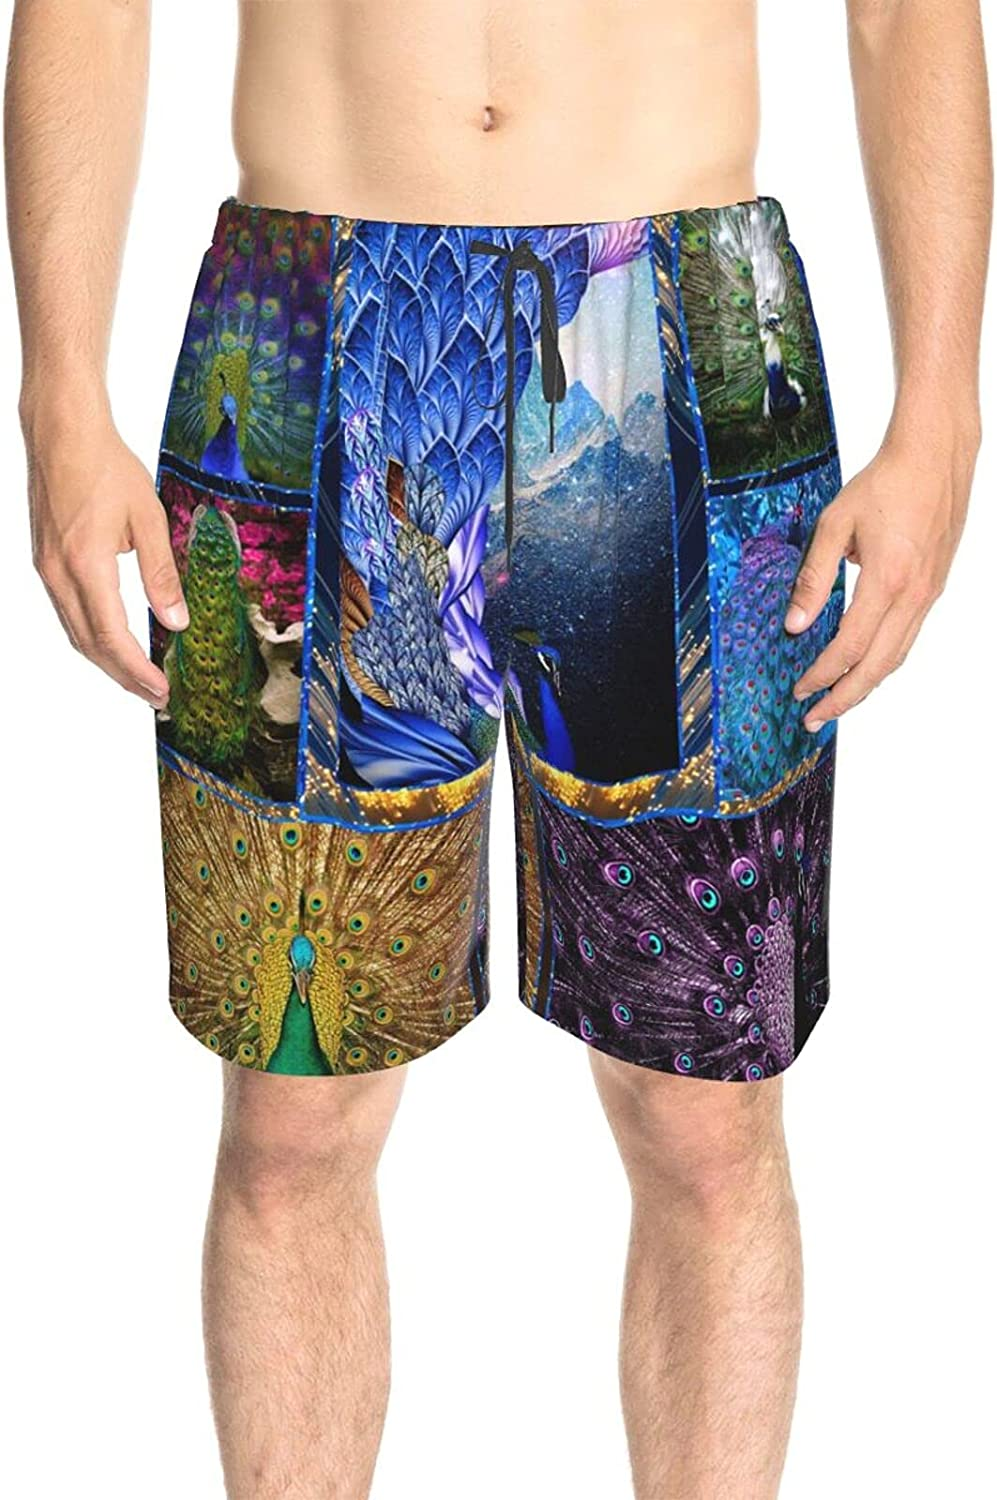 JINJUELS Men's Swim Shorts Gorgeous Peacock Beach Board Shorts Quick Dry Cool Summer Boardshorts with Lining